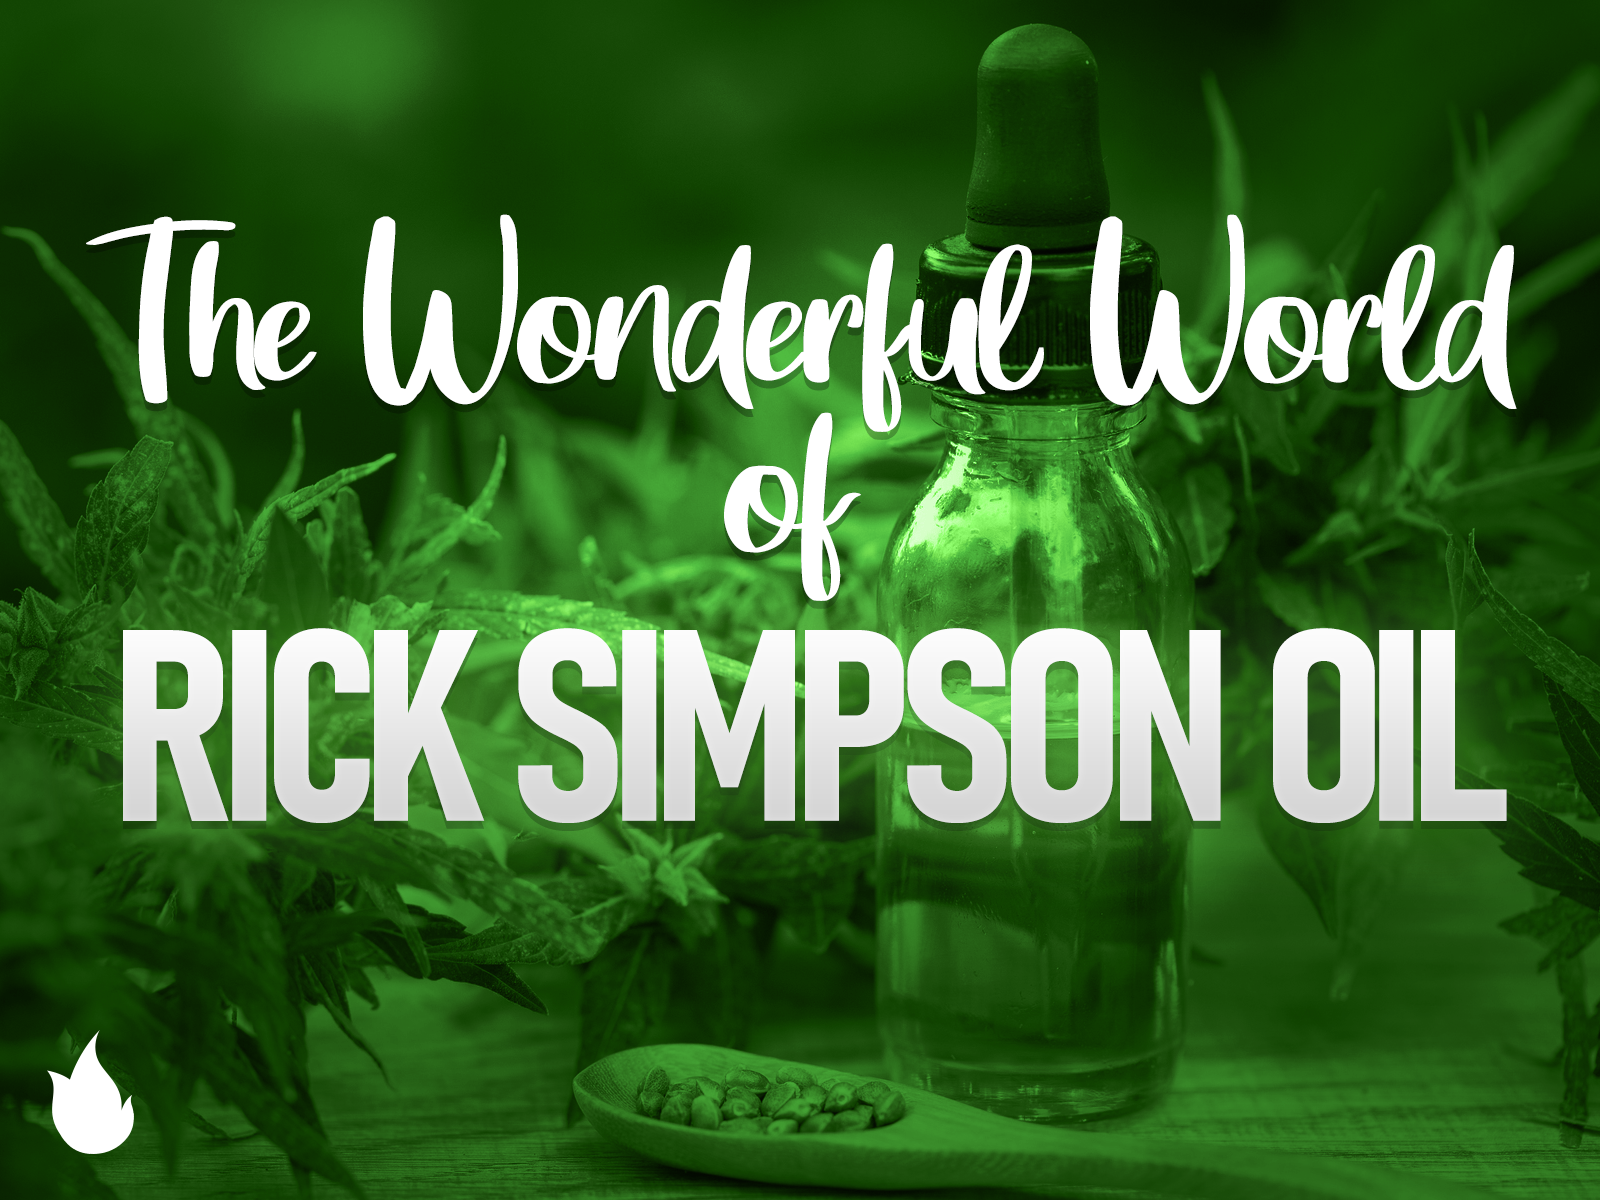 The Wonderful World of Rick Simpson Oil